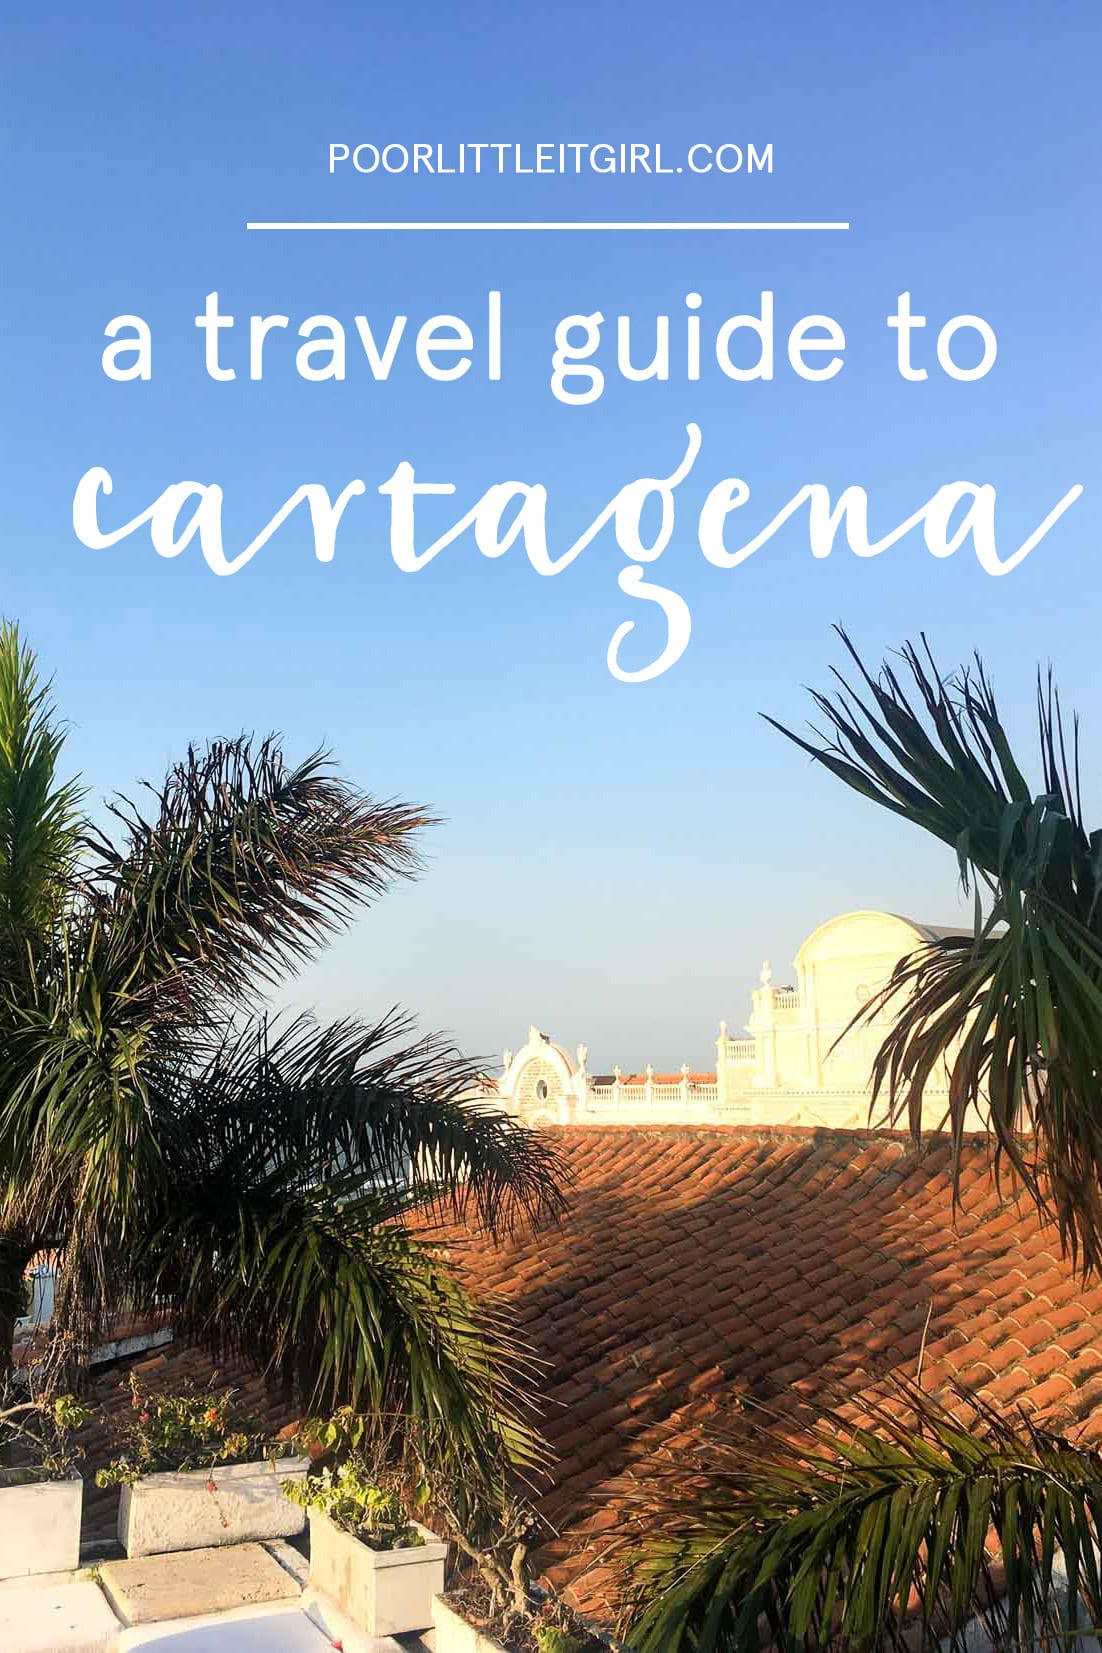 A Travel Guide To Cartagena, Colombia